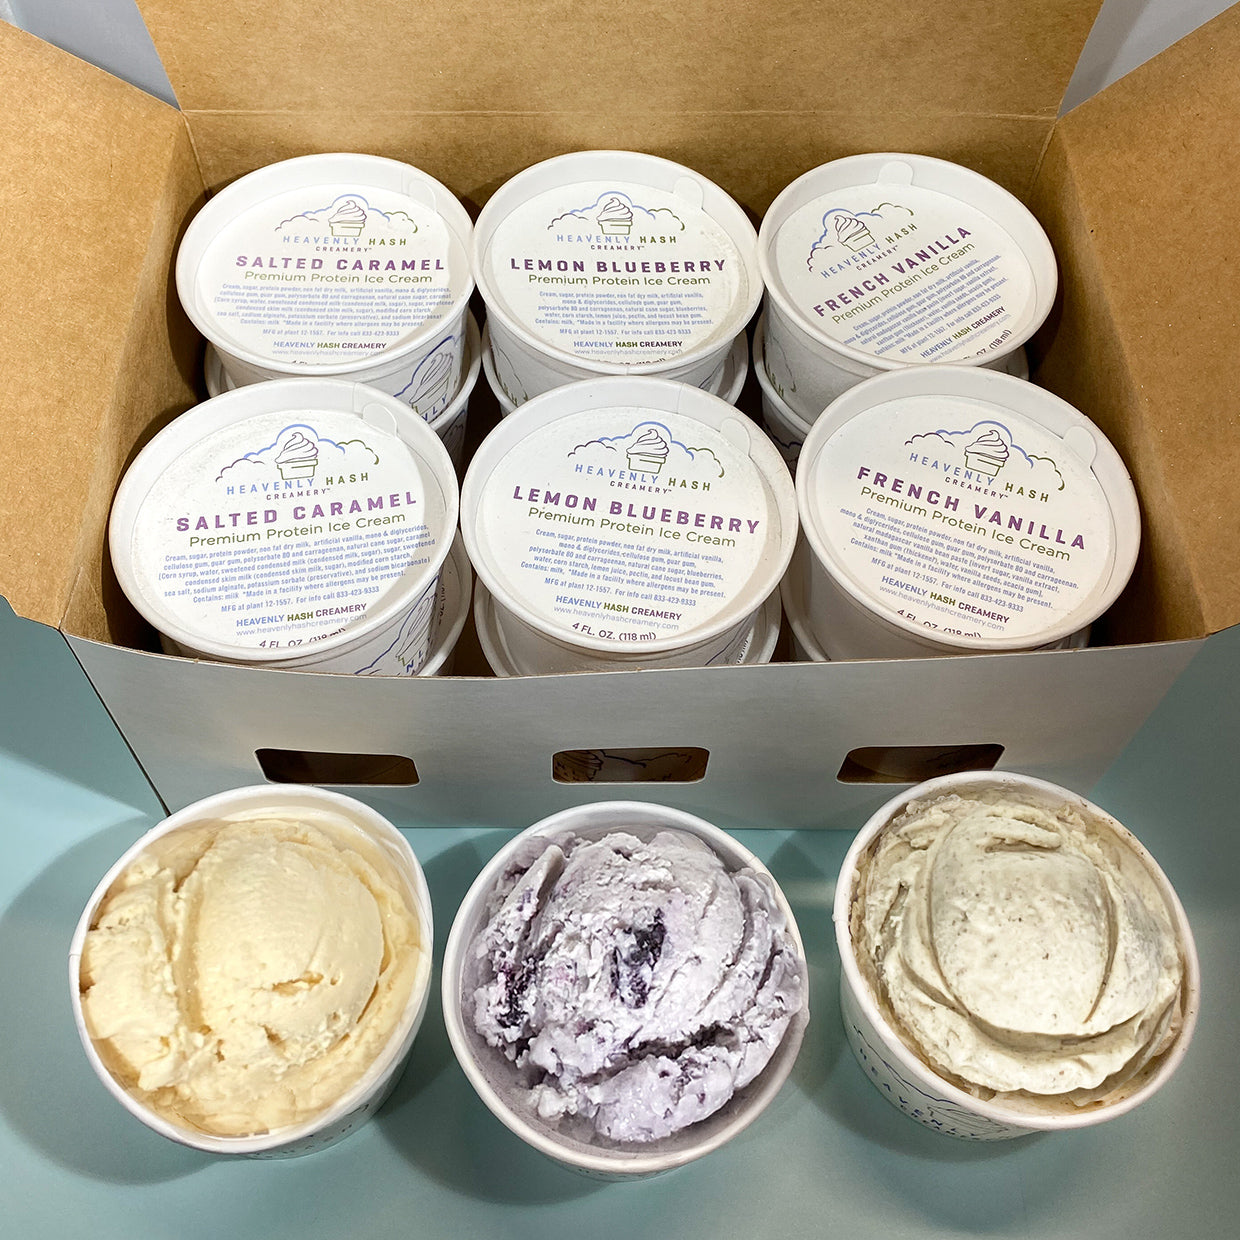 Our Variety Pack of 3 flavors including (4) Salted Caramel, (4) Lemon Blueberry, (4) French Vanilla shown in the 12-pack carton with a Heavenly Hash Creamery cup open and filled with delicious high protein ice cream.